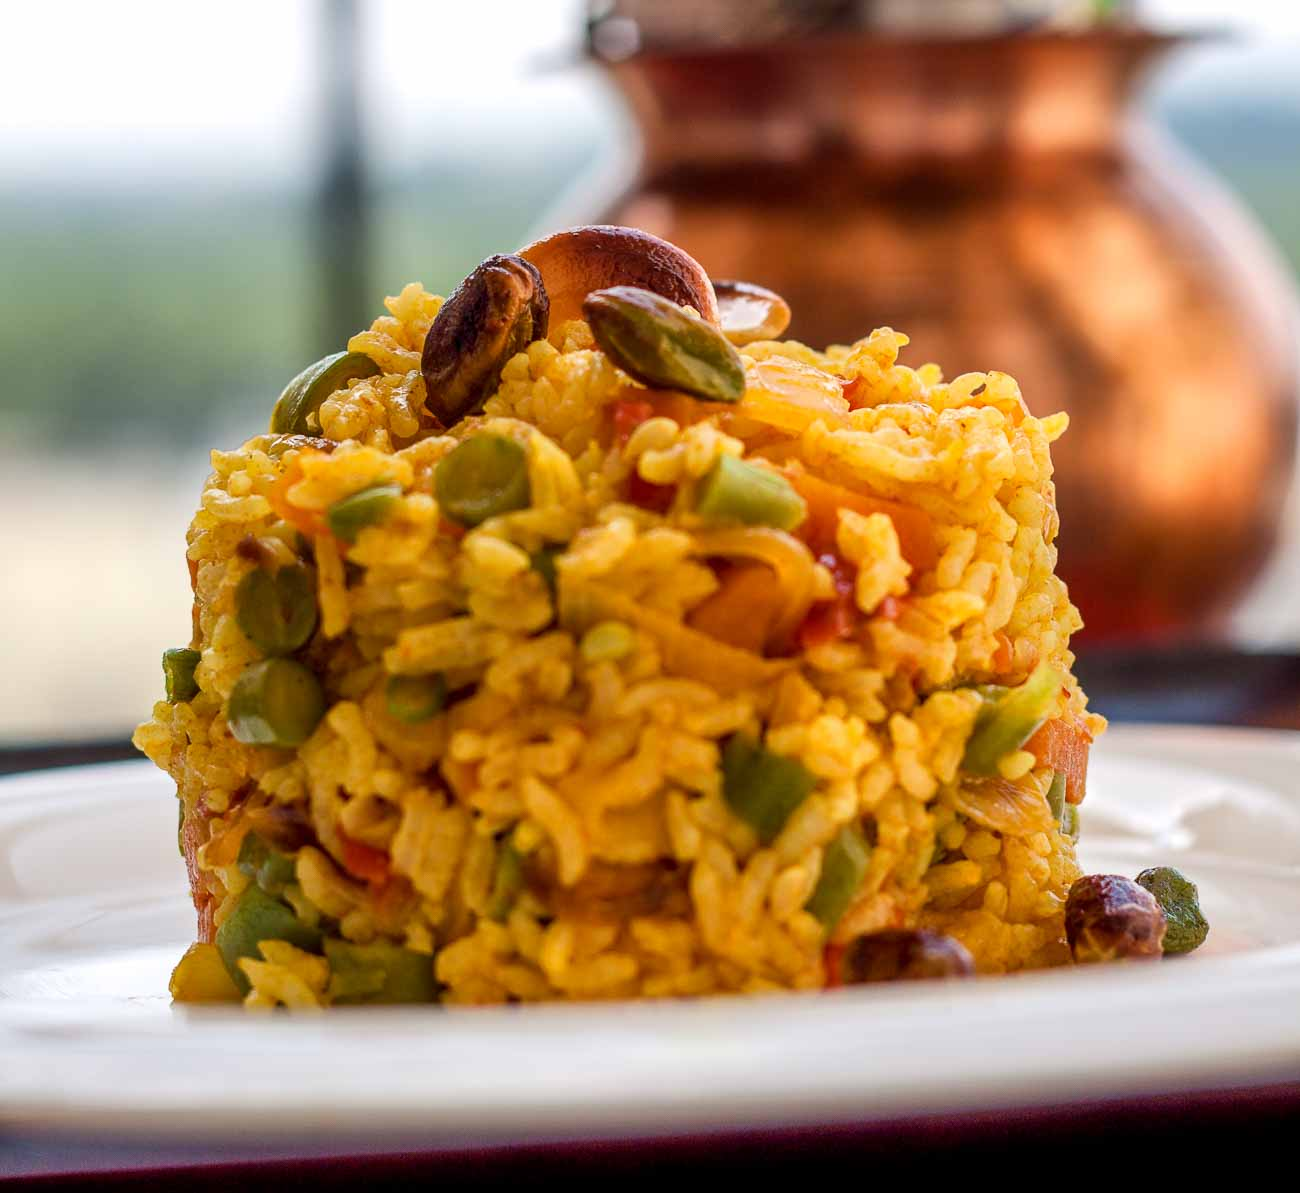 Gujarati badshahi pulao recipe a rich preparation of rice gujarati badshahi pulao recipe a rich preparation of rice vegetables nuts and spices forumfinder Image collections